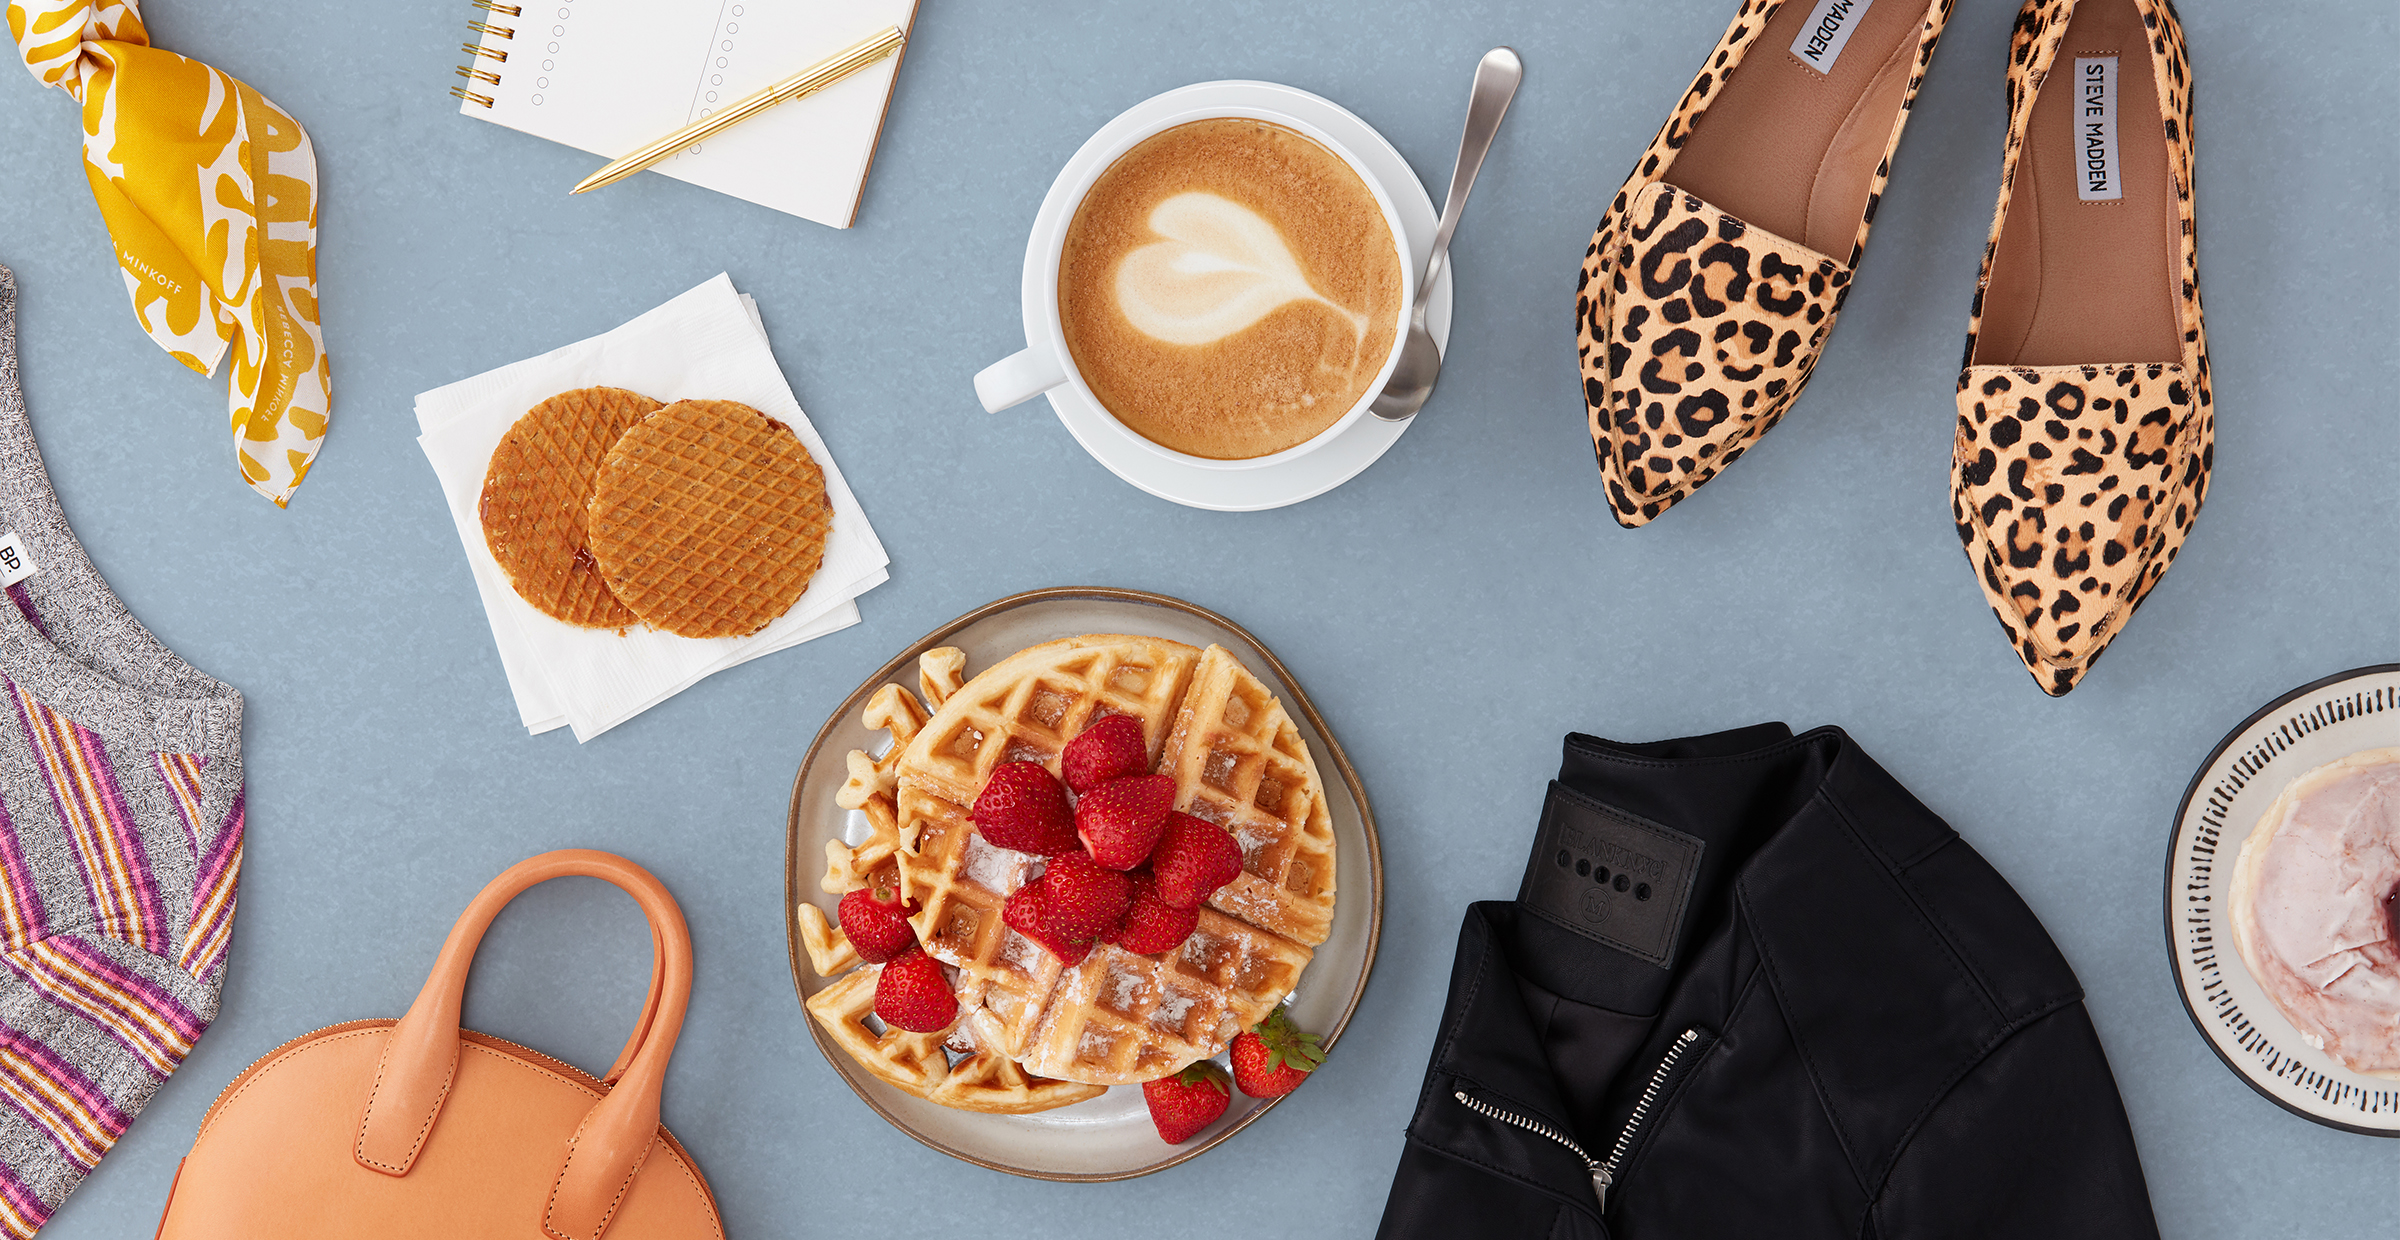 What to Wear to Brunch: 3 Fall Outfit Ideas